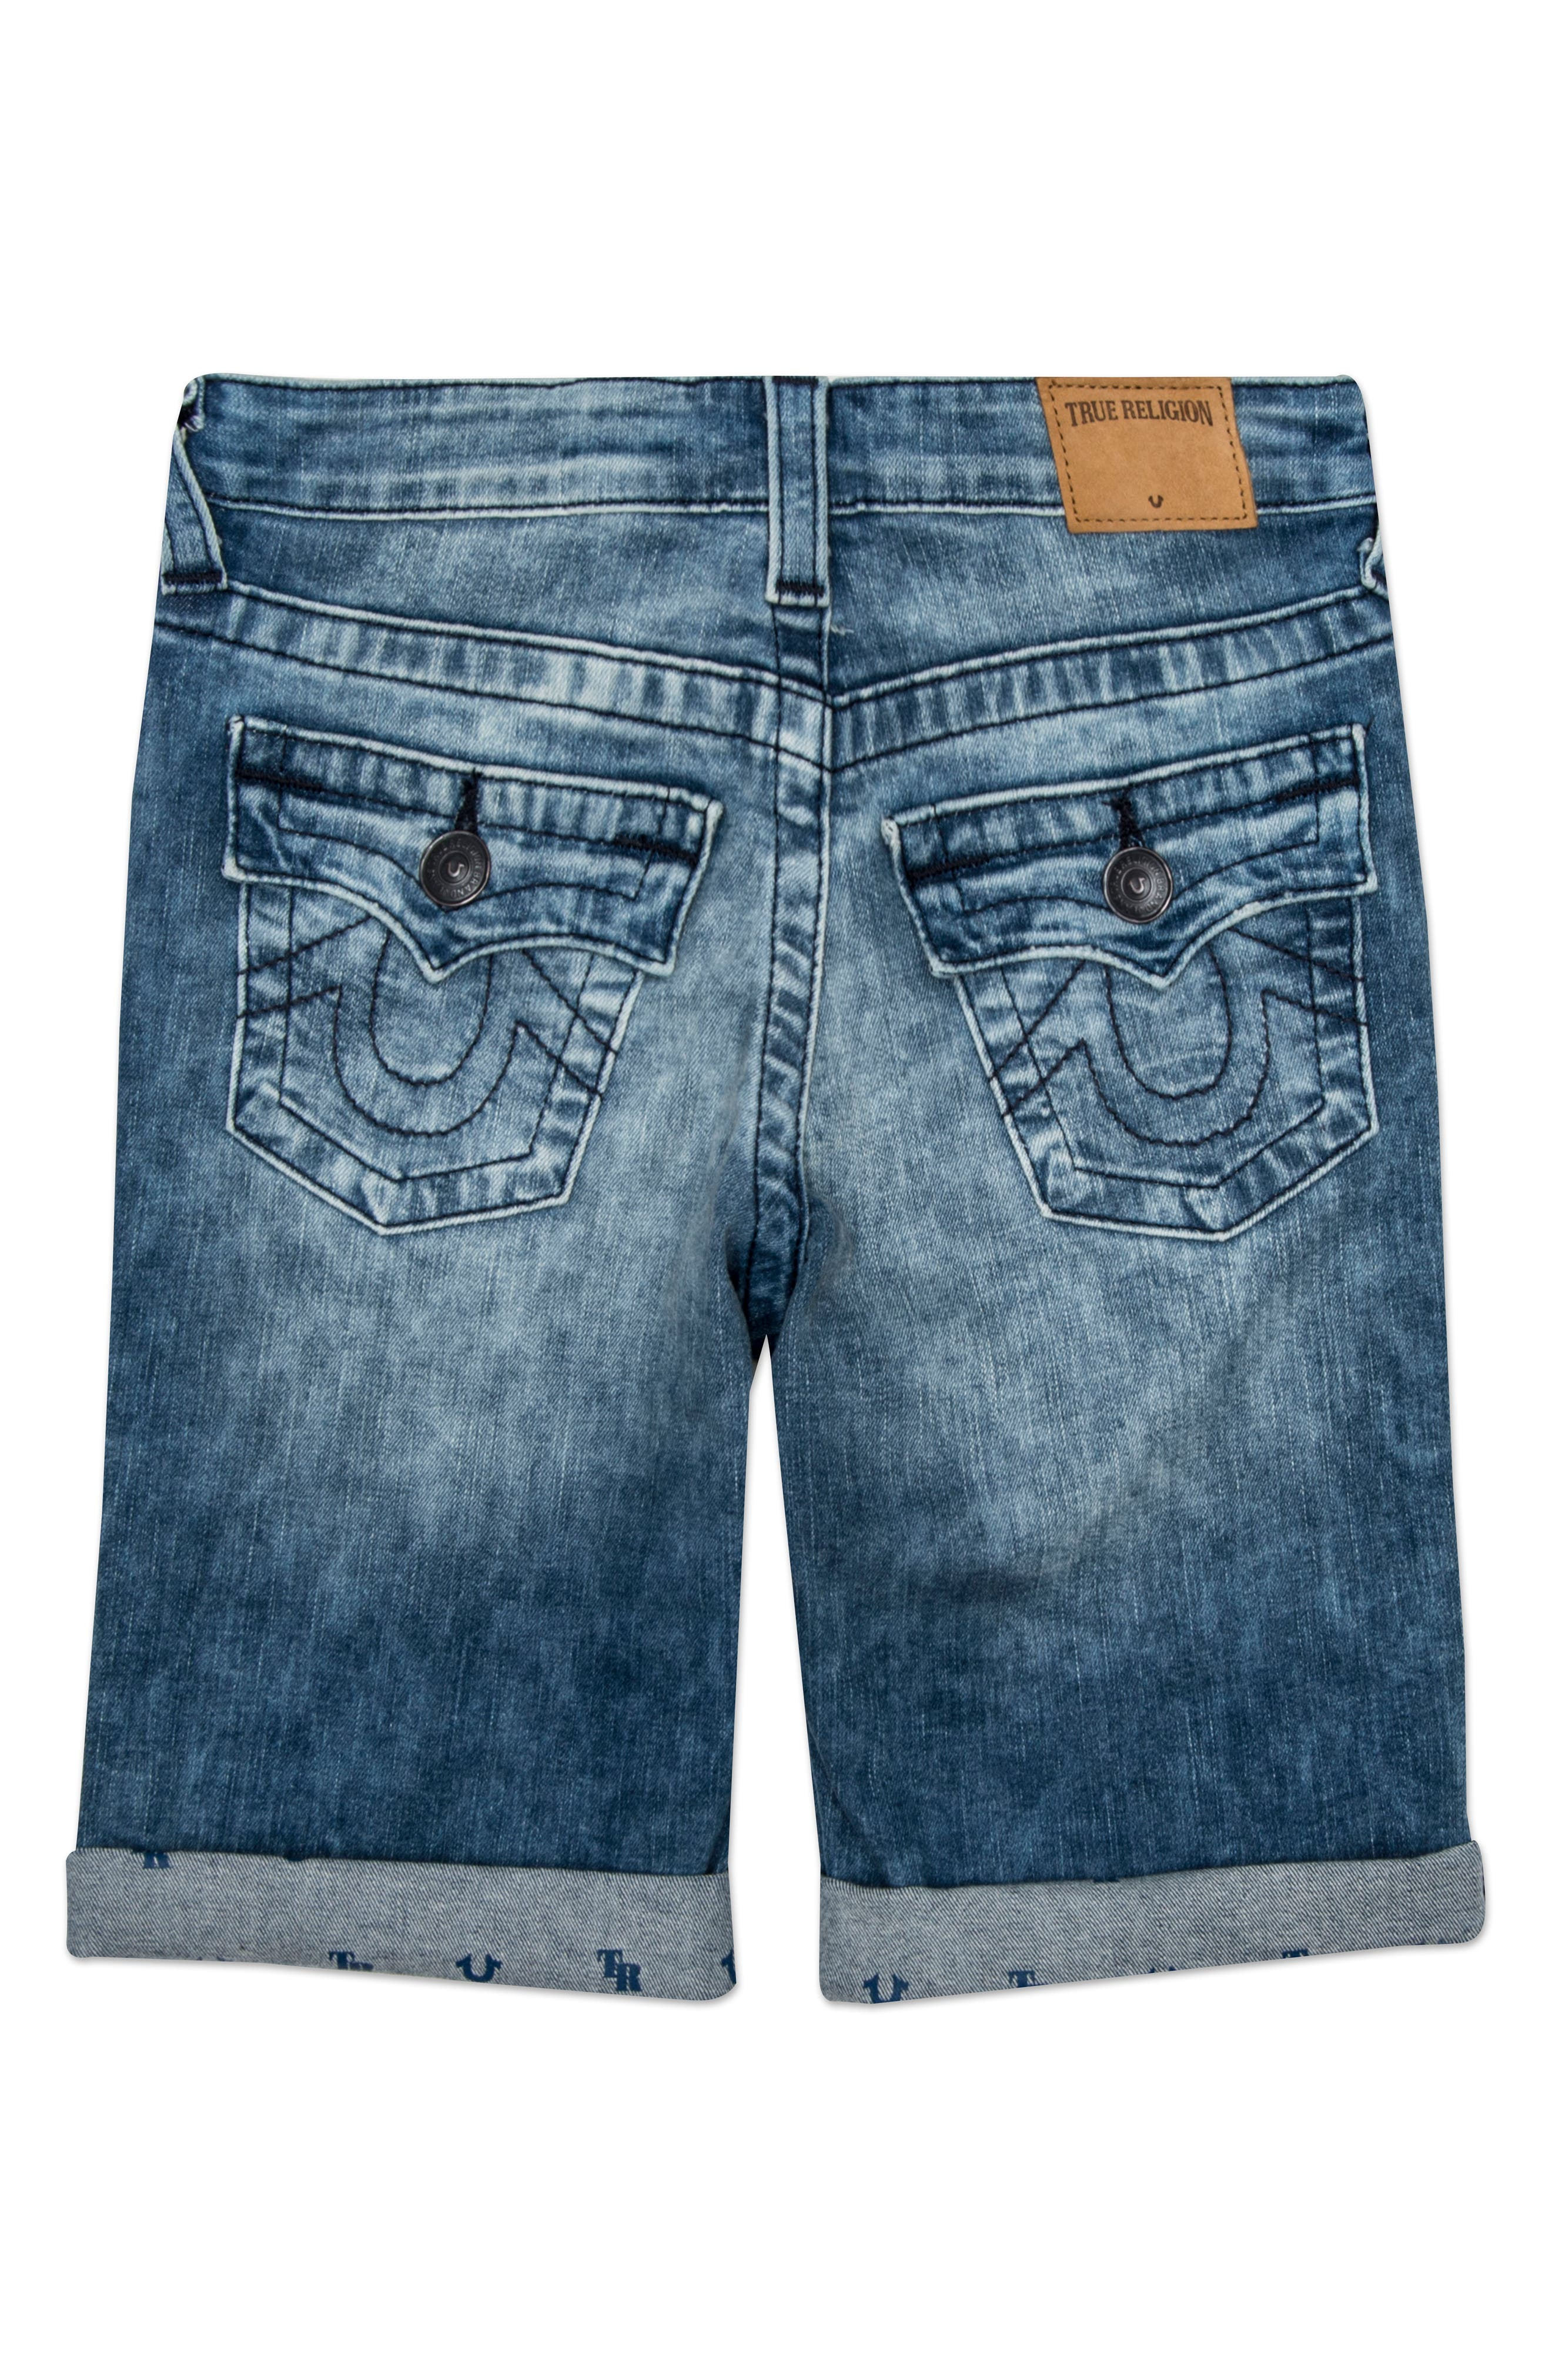 Alternate Image 2  - True Religion Brand Jeans Geno Shorts (Toddler Boys & Little Boys)